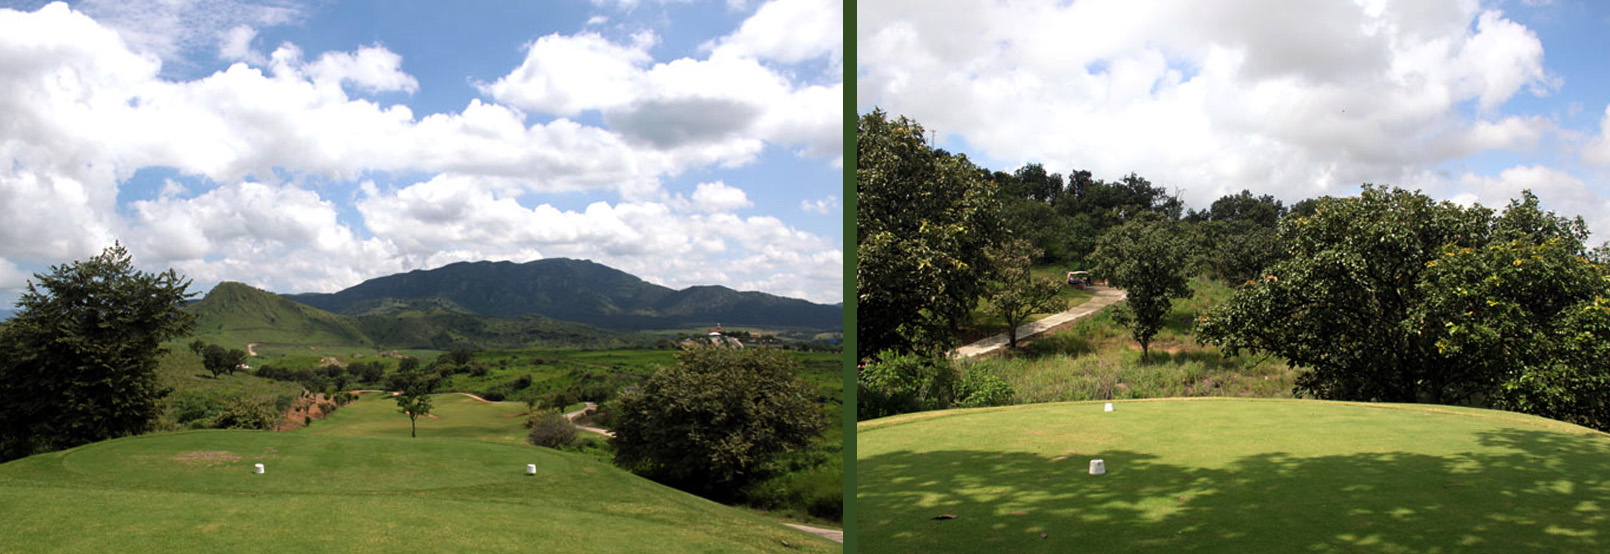 Santa Sofia Haciendas Country Club